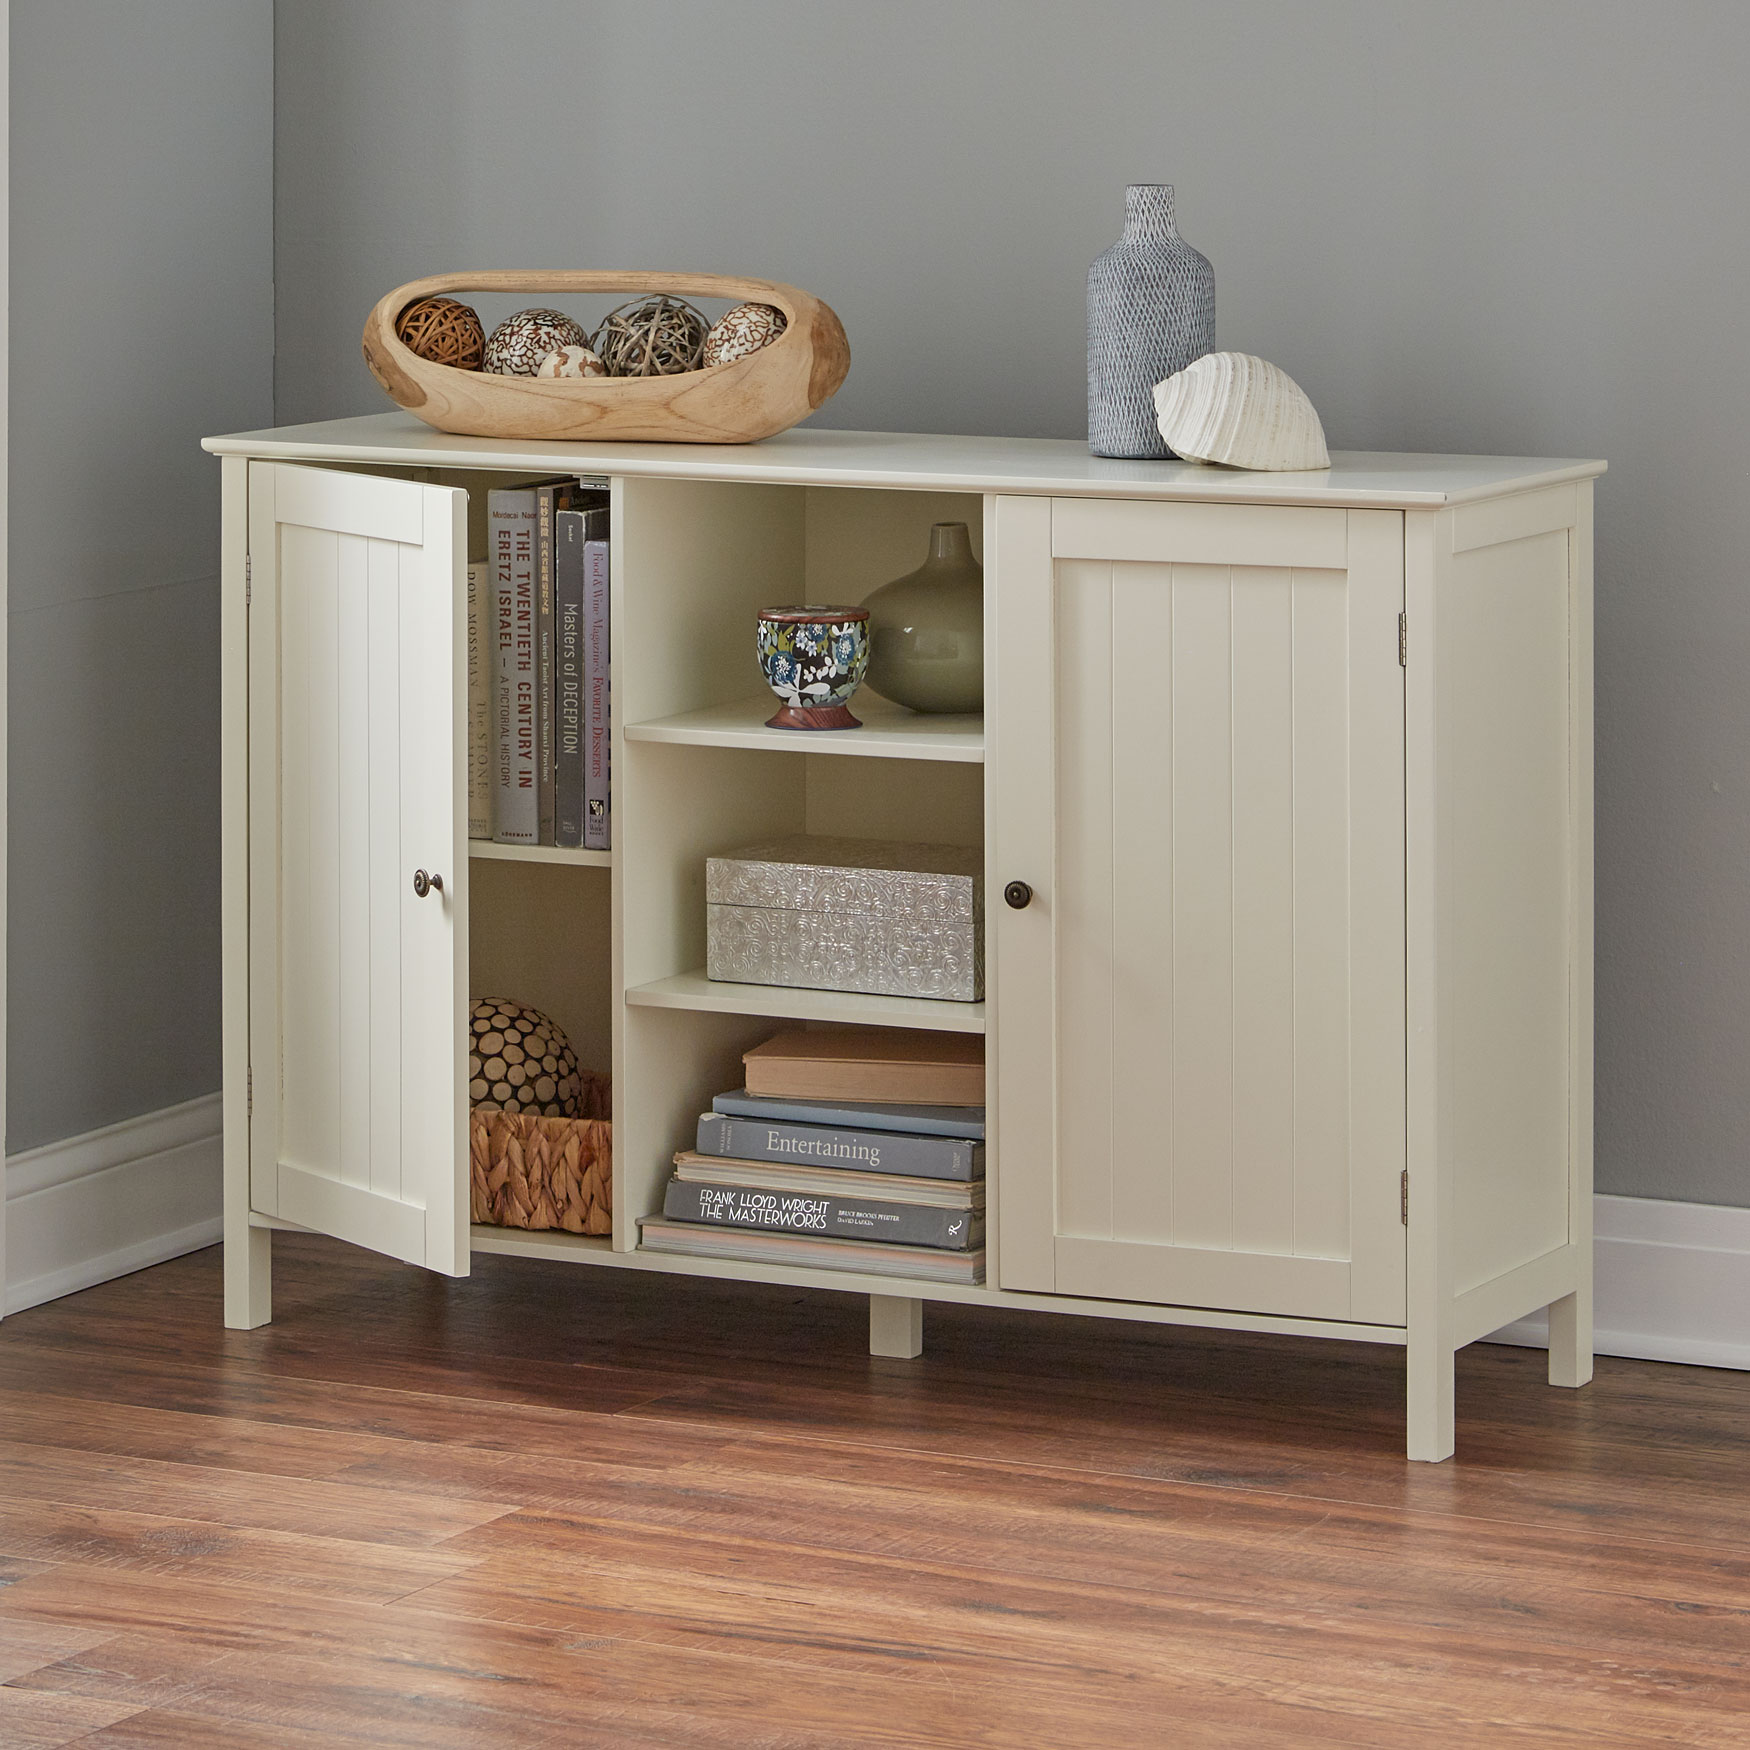 Adelaide 2-Door Cabinet with Shelves,